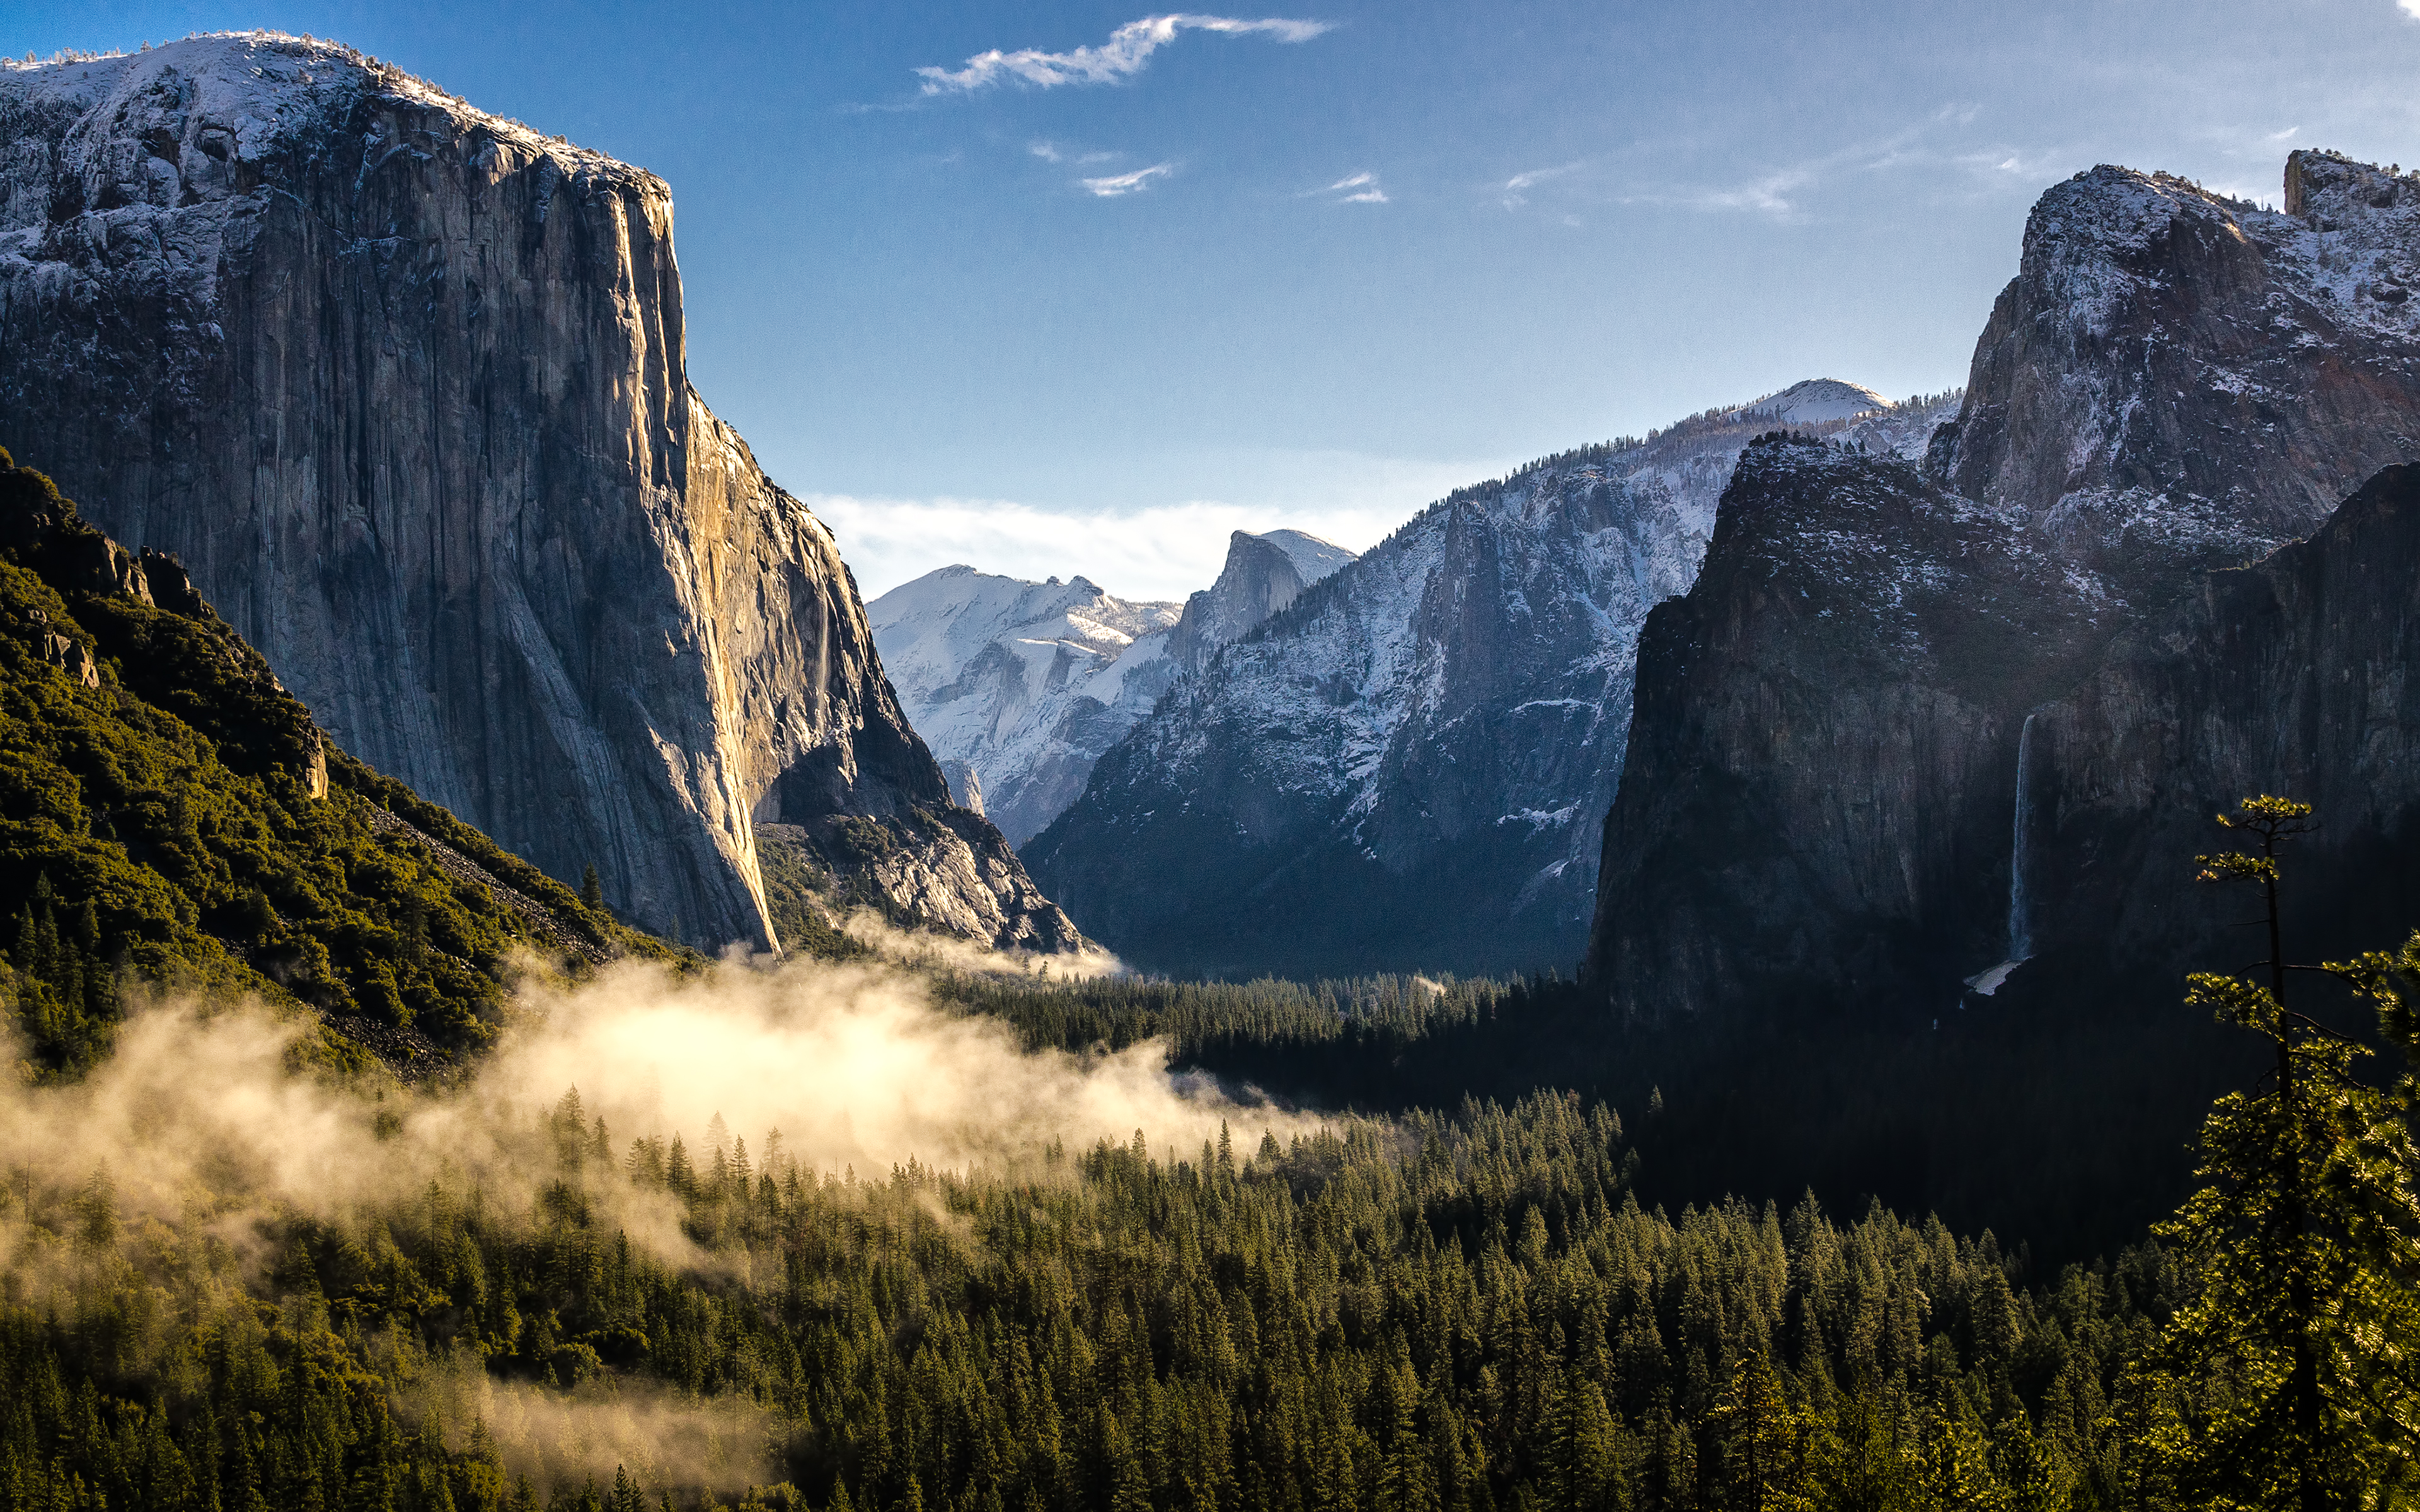 Cool Pictures Of Cars >> Daily Wallpaper: Yosemite National Park in the Morning | I Like To Waste My Time